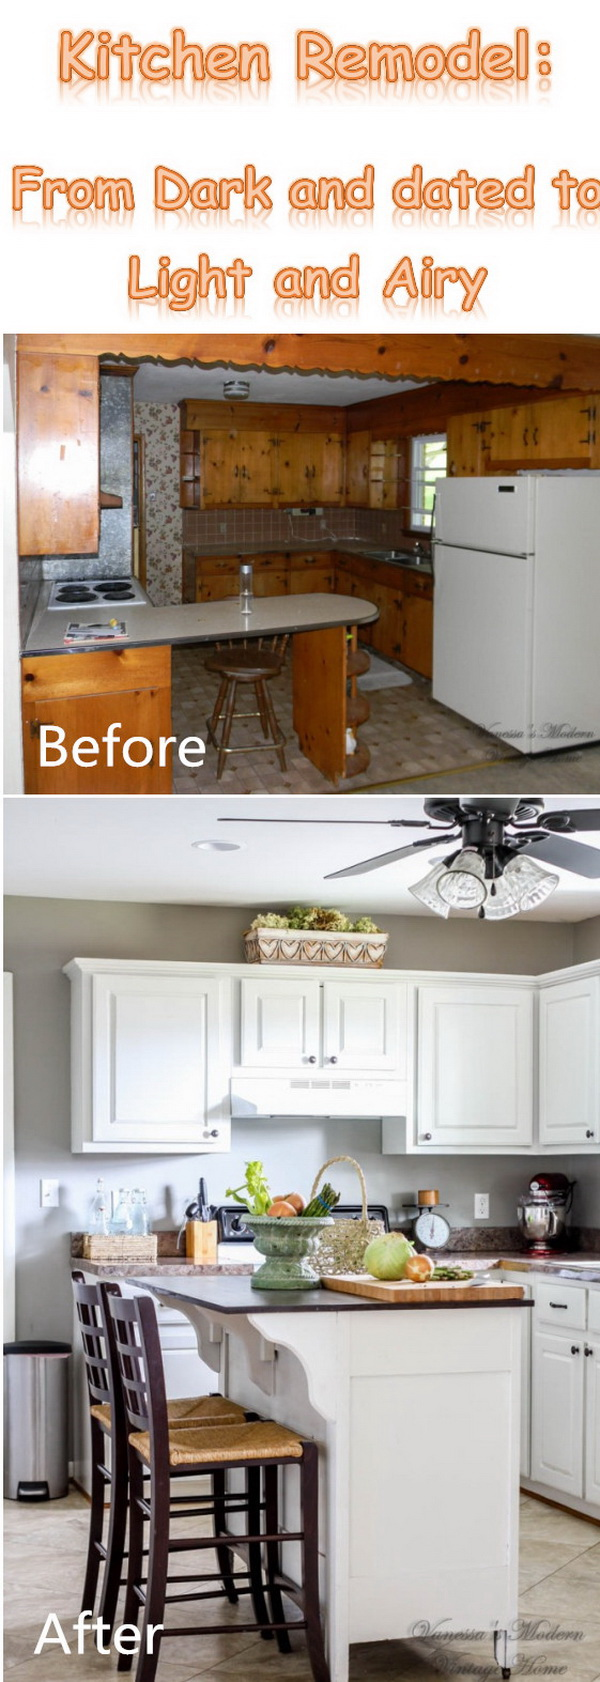 Dark and dated kitchen turned light and airy.